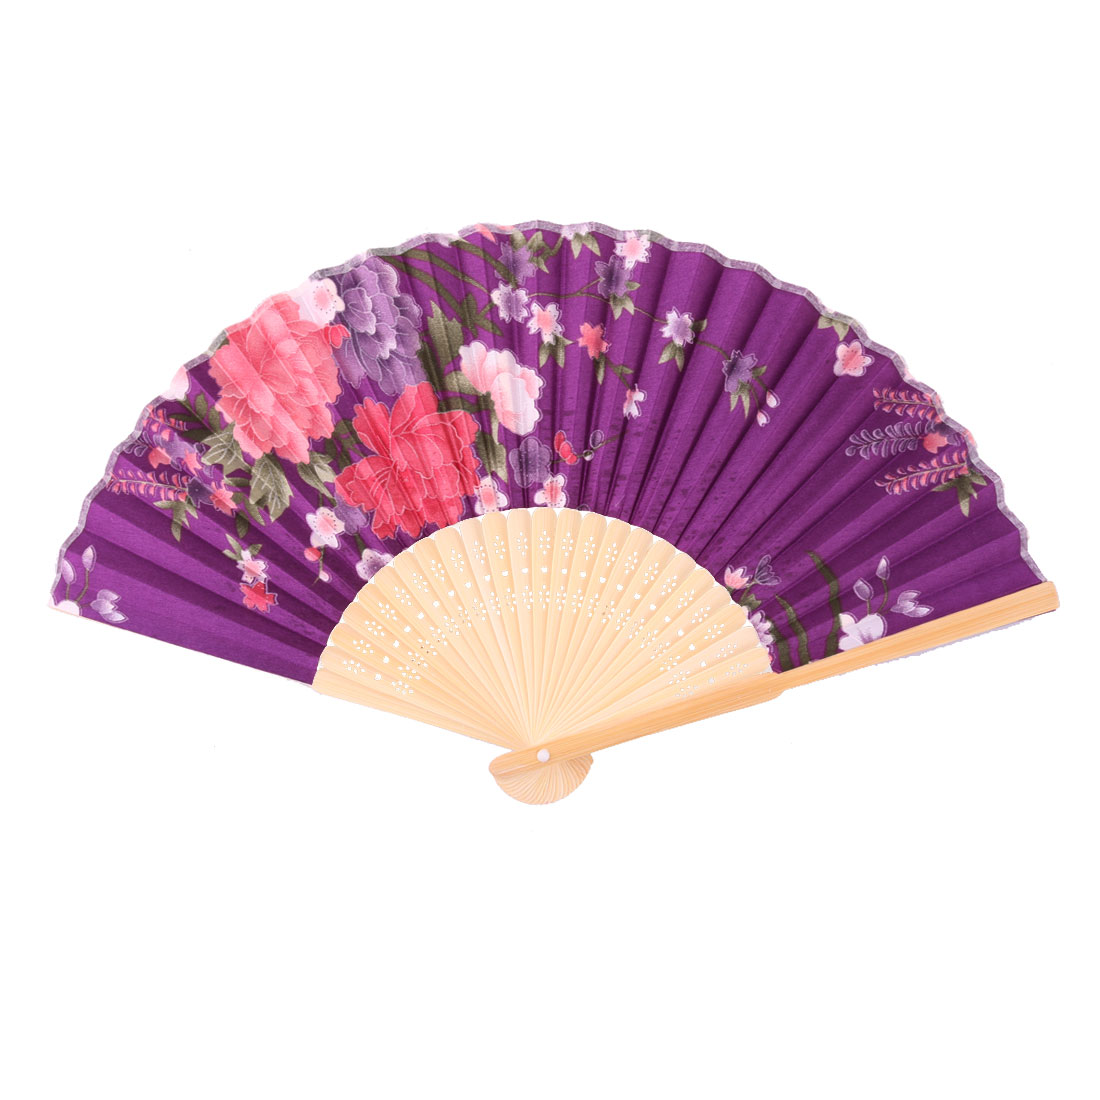 Household Bamboo Frame Floral Printed Retro Style Cooling Hand Fan 21cm Length